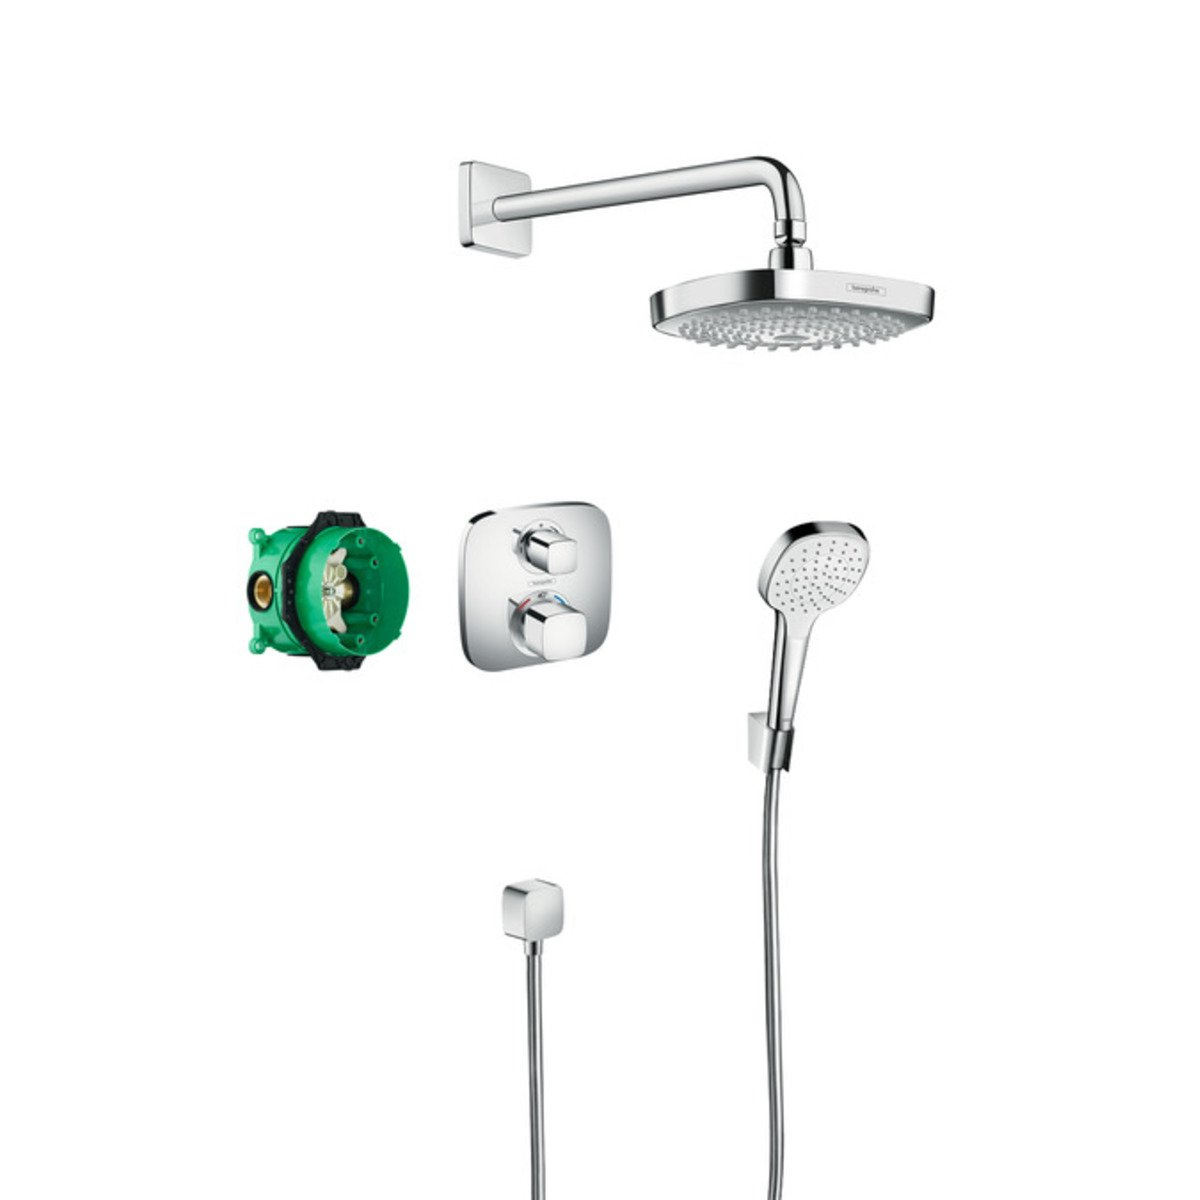 hansgrohe croma select e showerset compleet met ecostat e thermostaat chroom 27294000. Black Bedroom Furniture Sets. Home Design Ideas